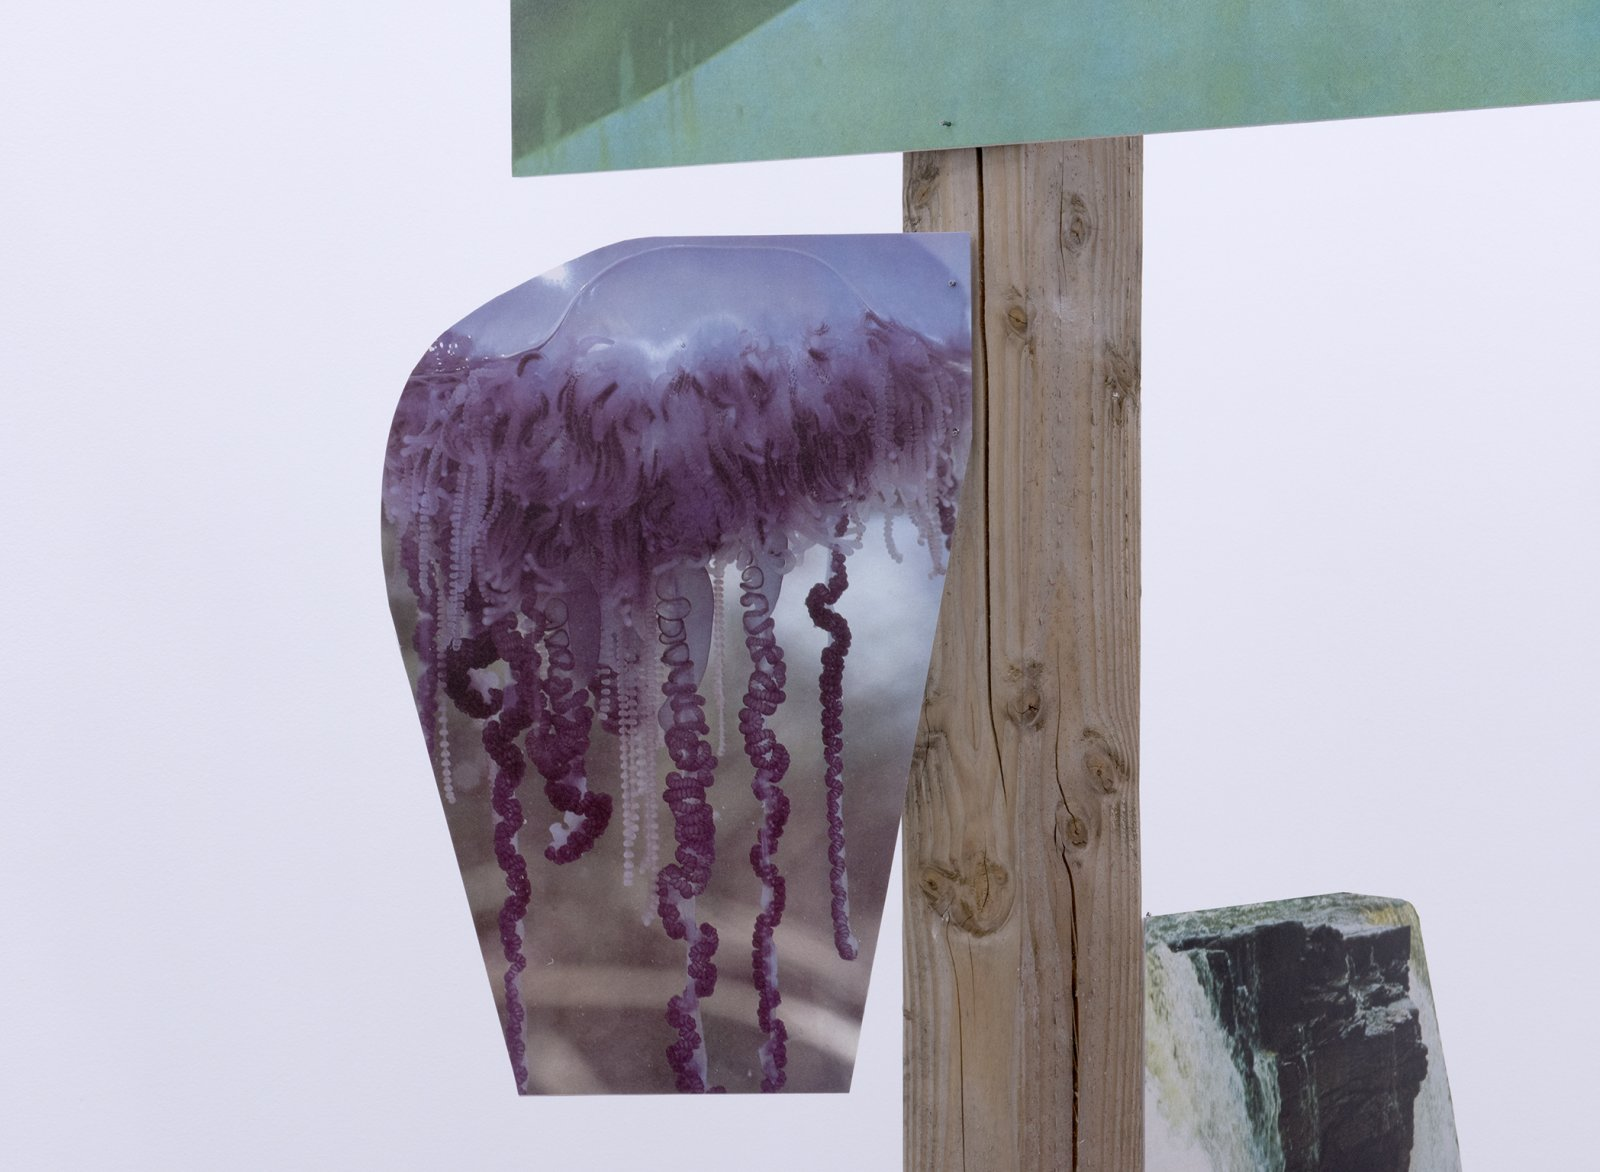 ​Geoffrey Farmer, Over, under, floating, rushing, with the delicate colour of violet. From curly hair grapes grow. This green belongs to the Arctic. (detail), 2014, douglas fir pole, 6 photographs mounted on foamcore, 200 x 4 x 4 in. (508 x 9 x 9 cm)​ by Geoffrey Farmer